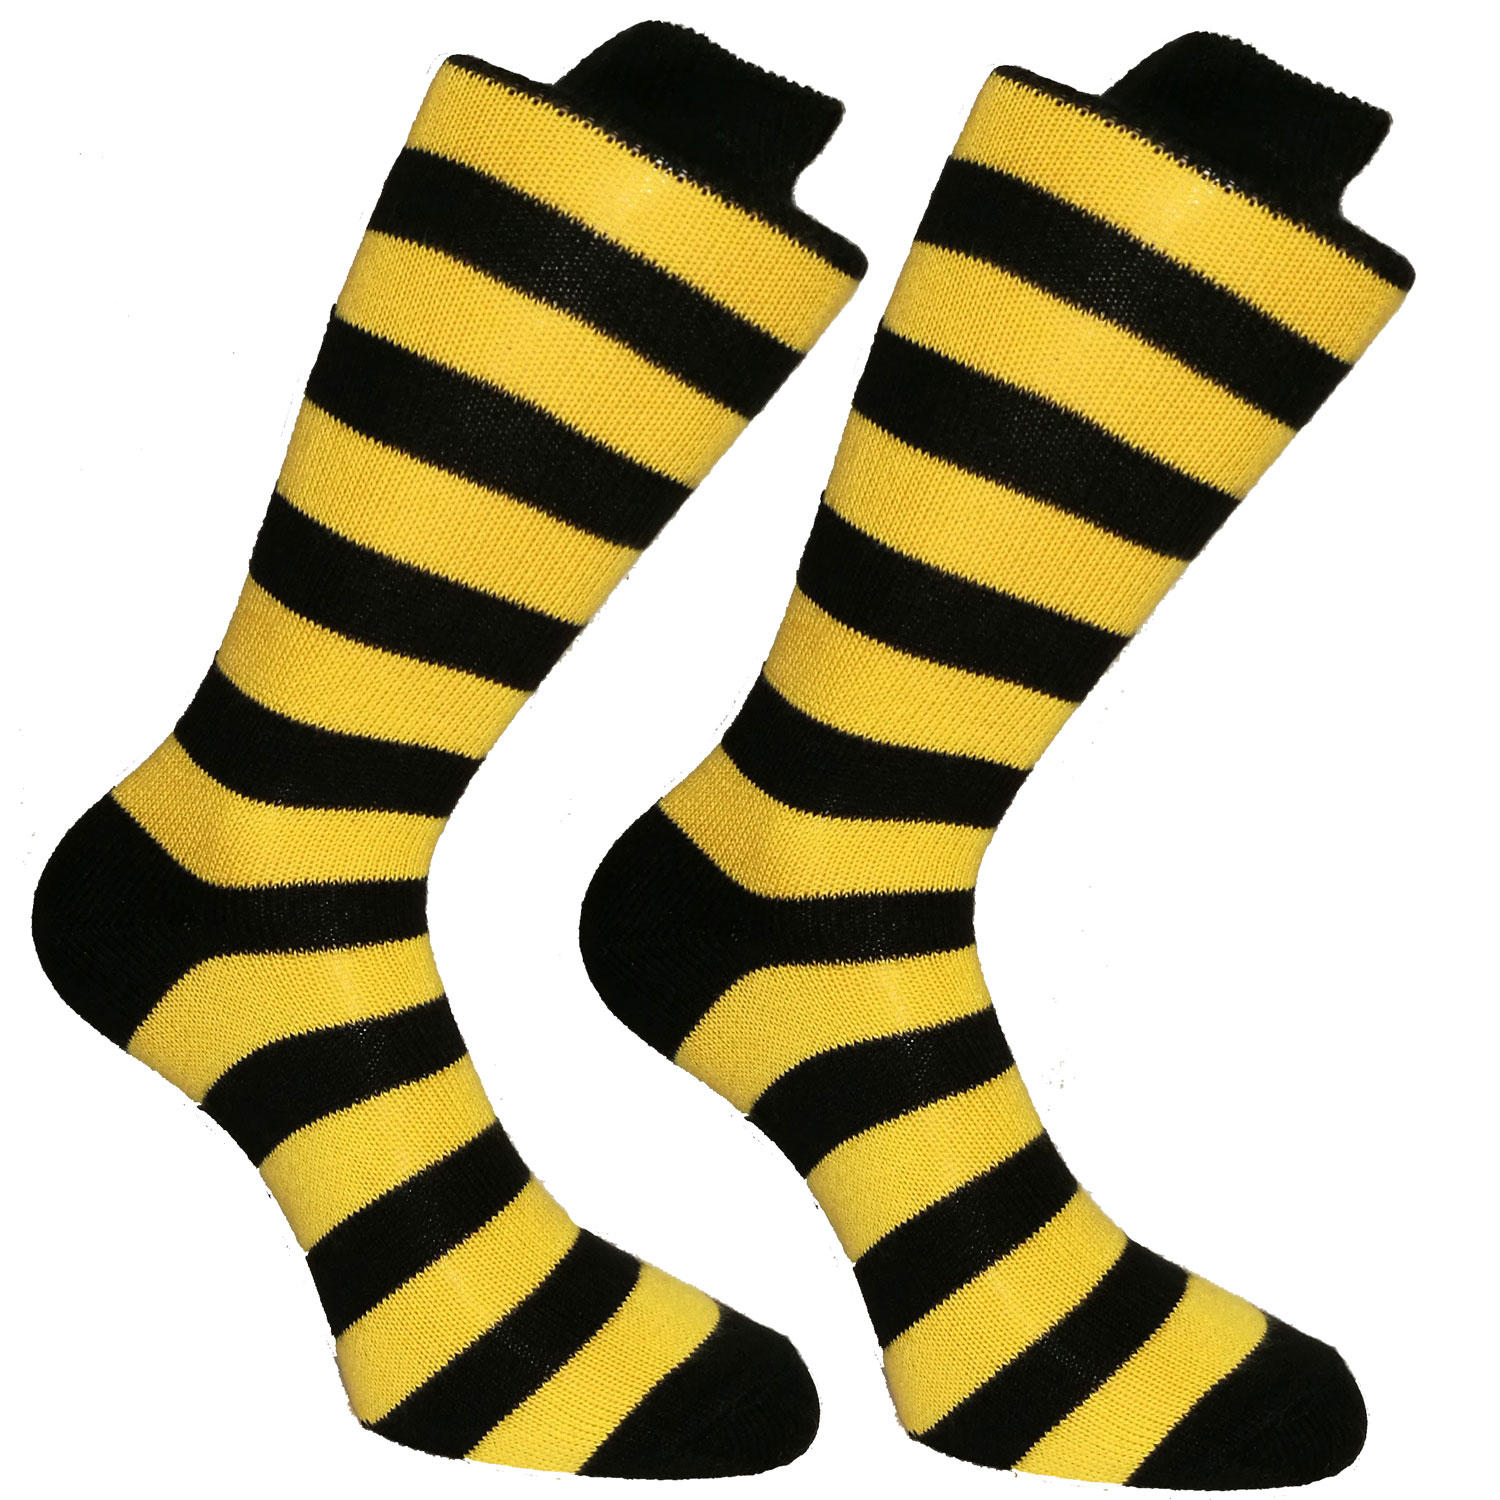 Black & Gold Stripy Socks | SOCK CLUB® from Cuffs & Co